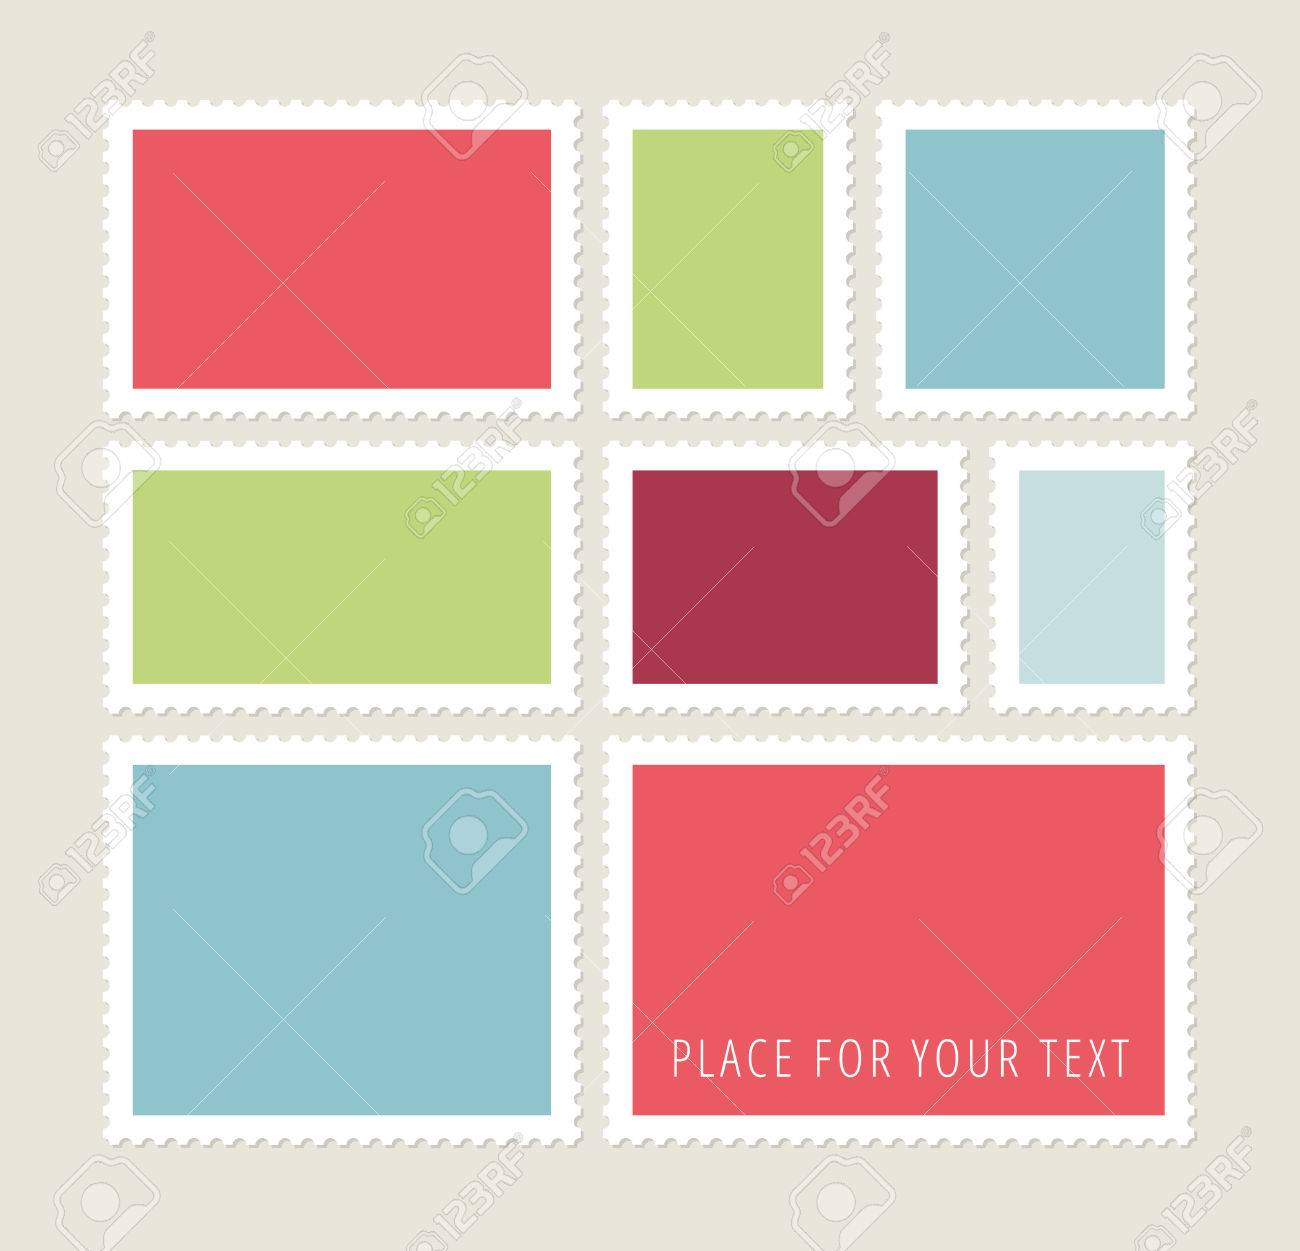 Eight blank colorful postage stamps, vector templates with place for your images and text - 38759705